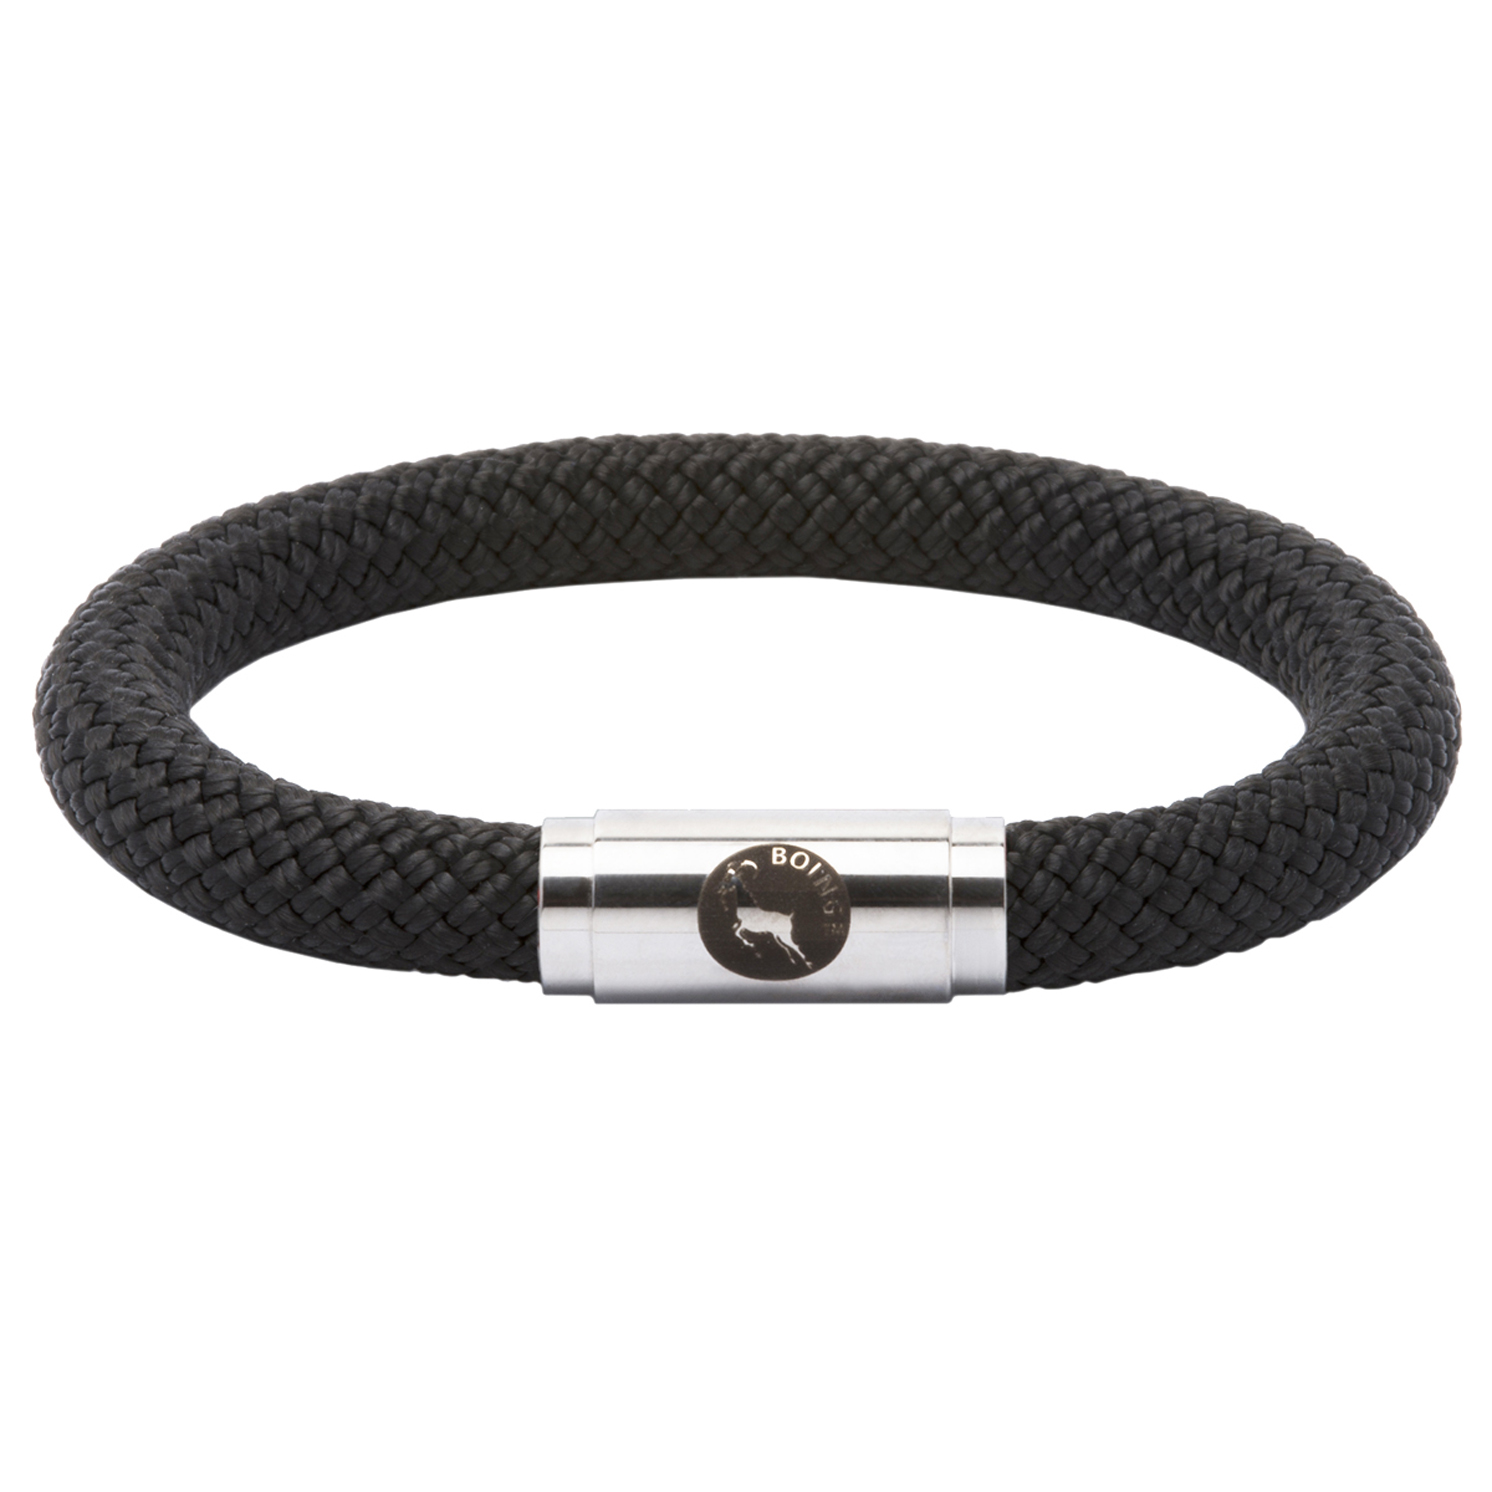 Boing – Middy XLarge Wristband in Raven